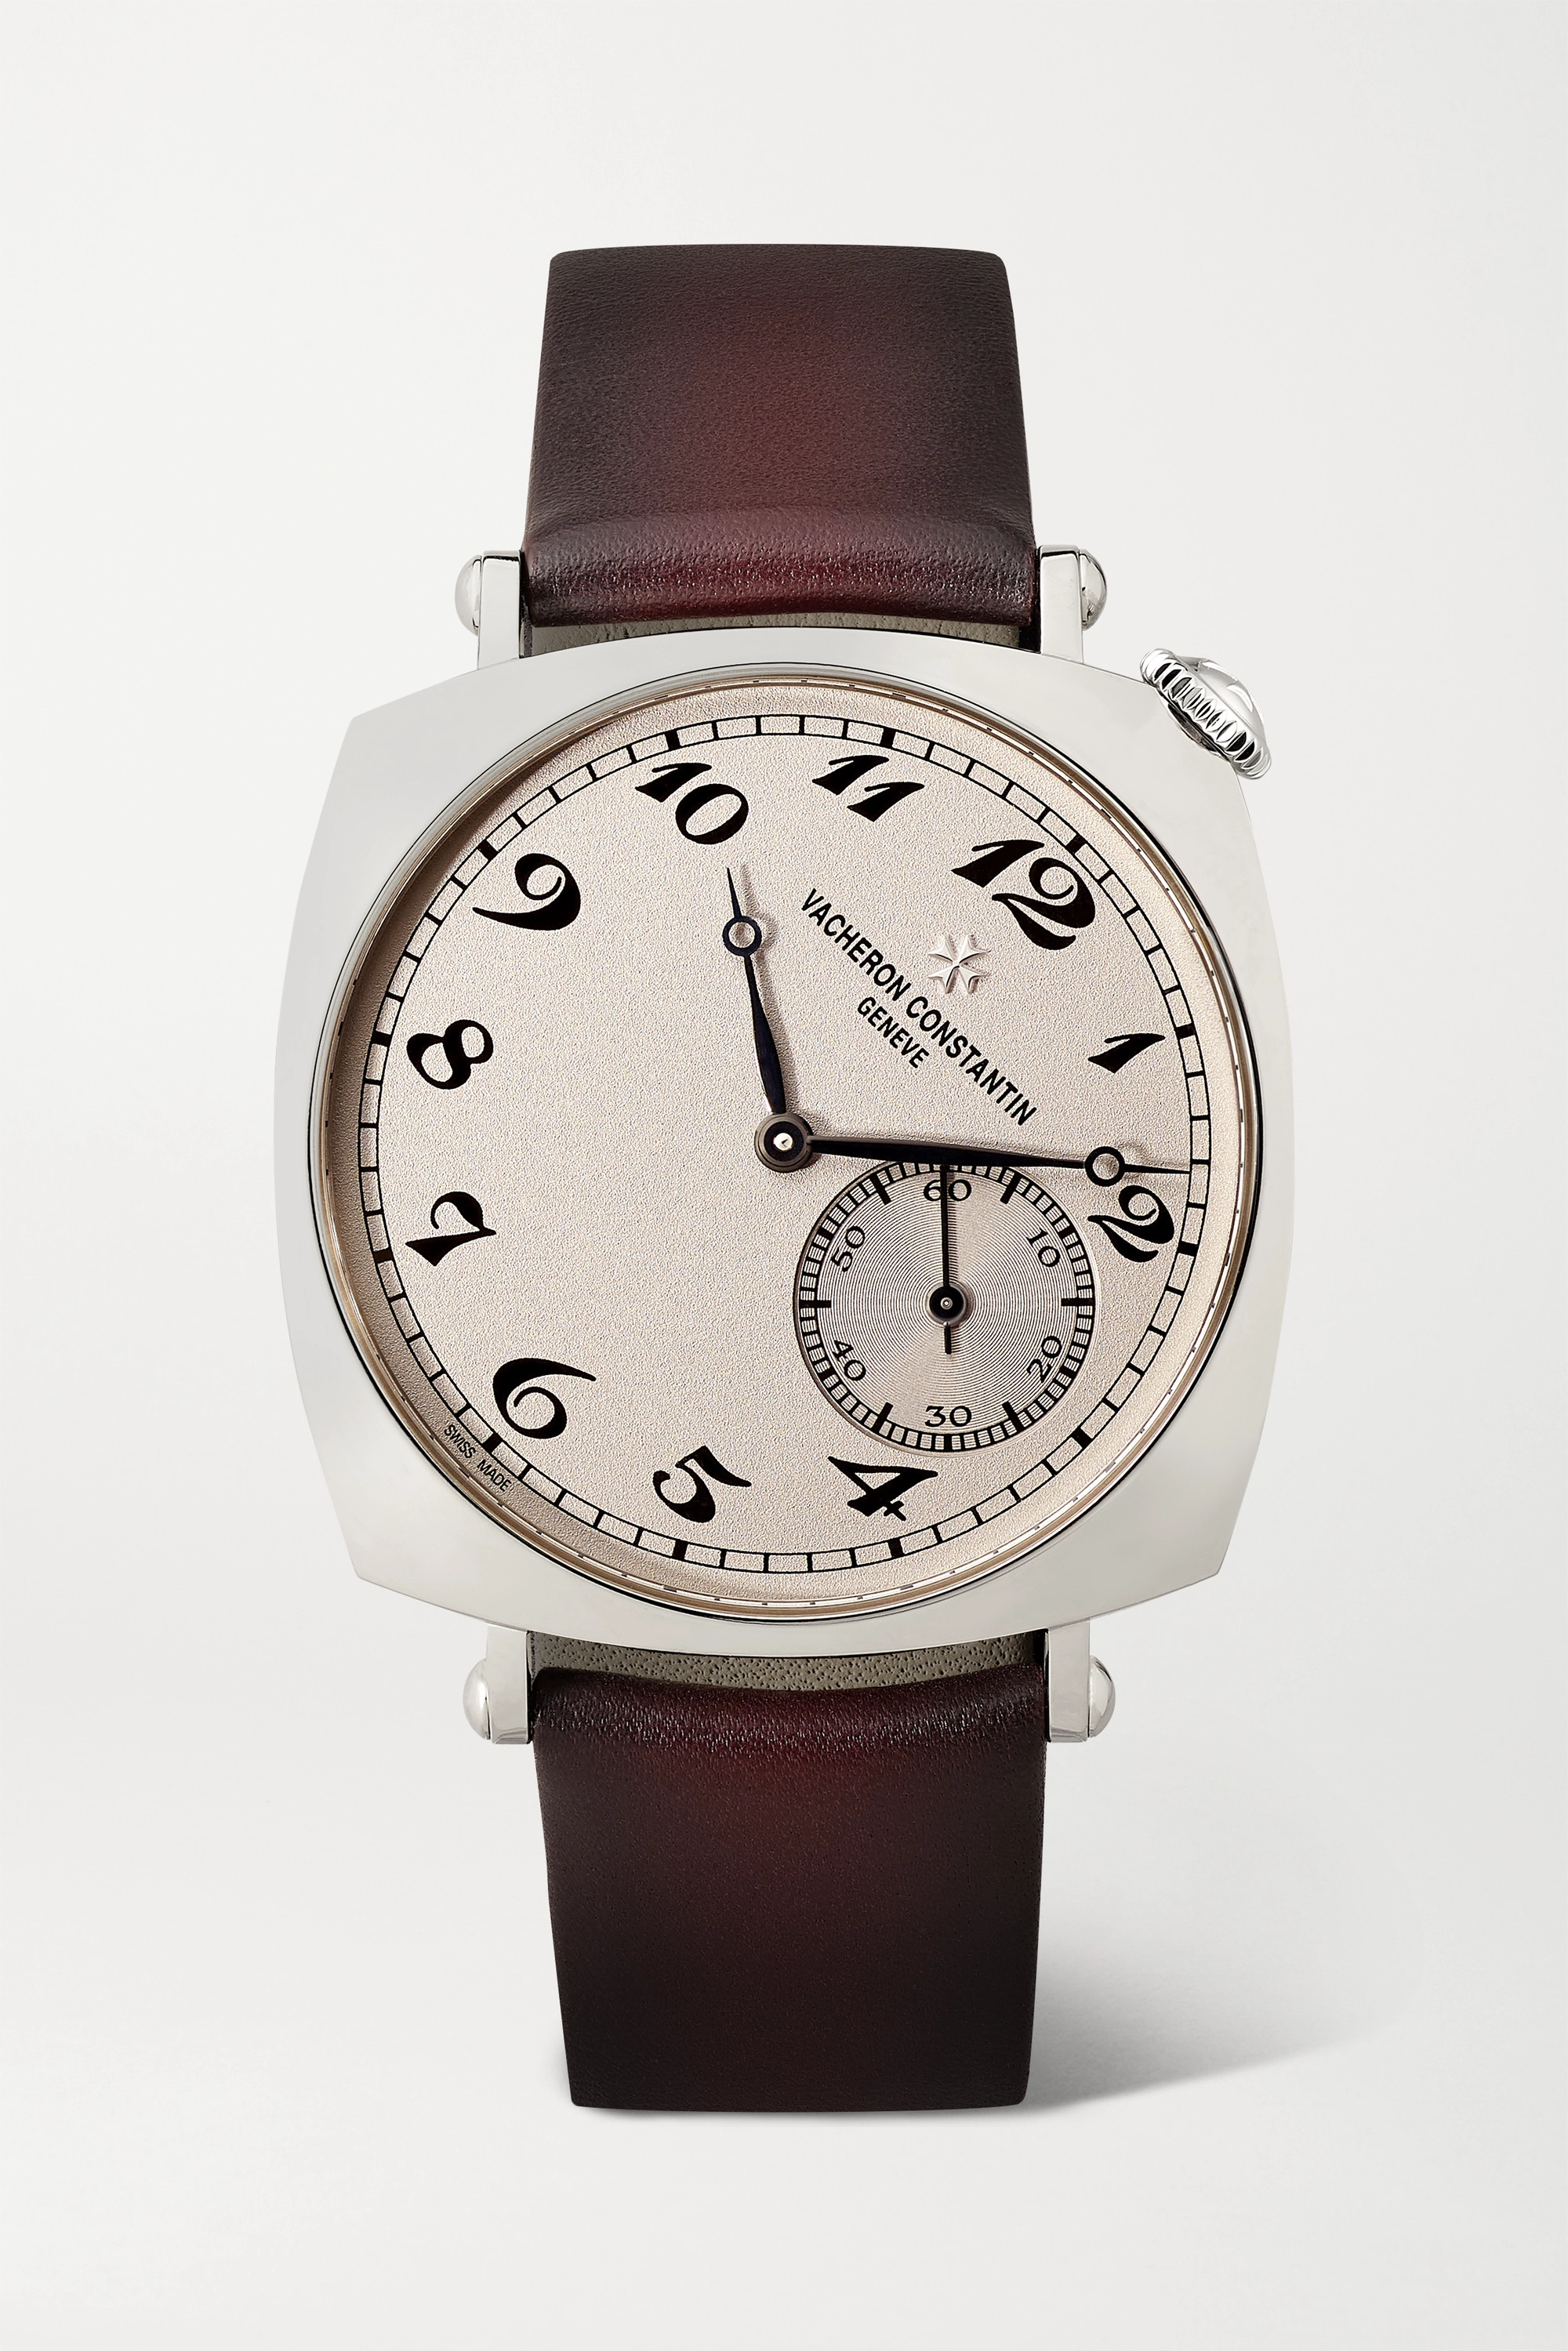 VACHERON CONSTANTIN Historiques American 1921 Hand-Wound 36.5mm 18-karat white gold and leather watch